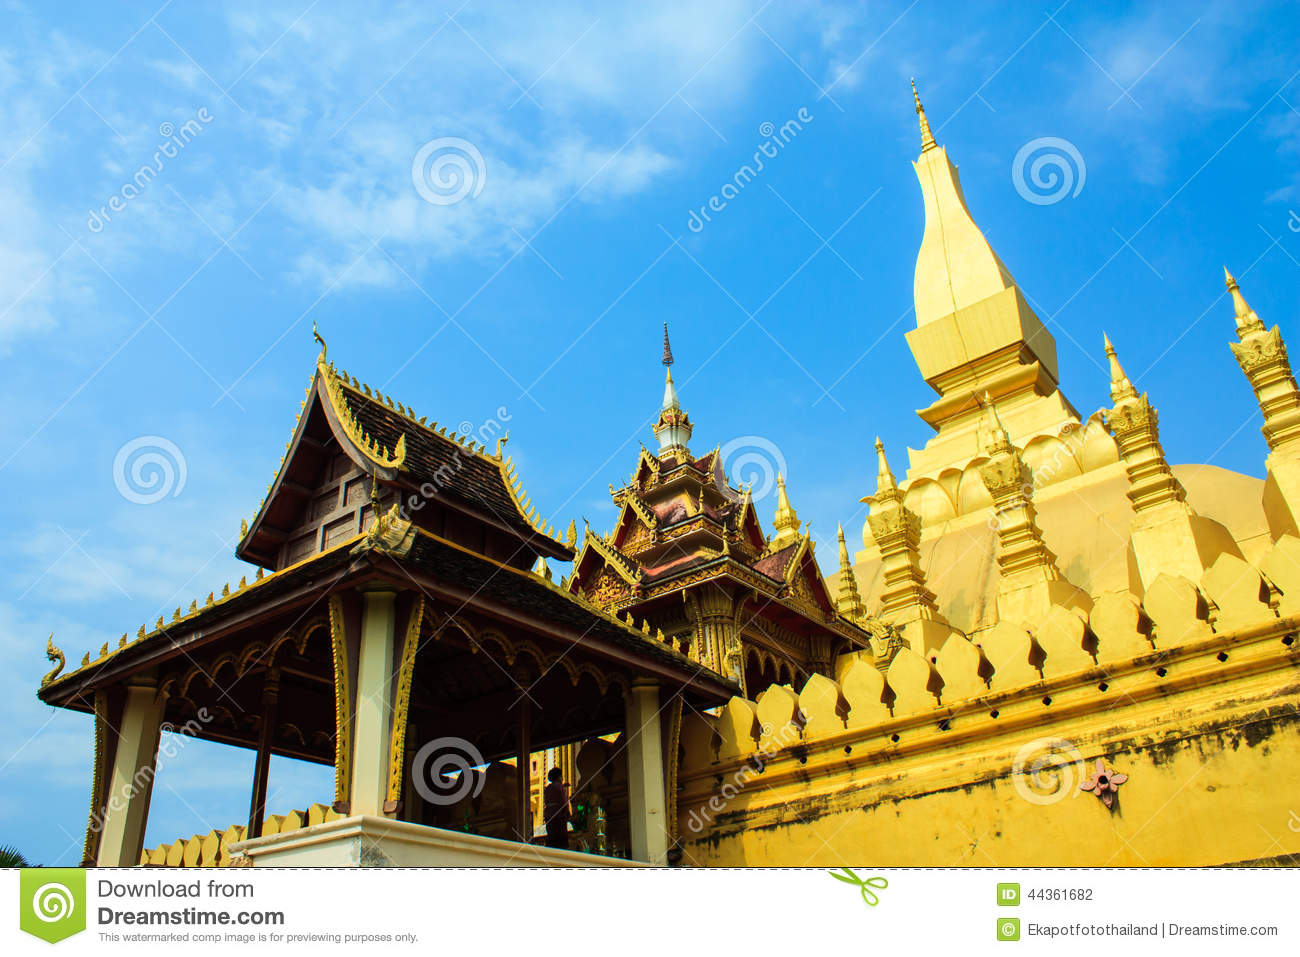 Pha che Luang, Vientian, Loas